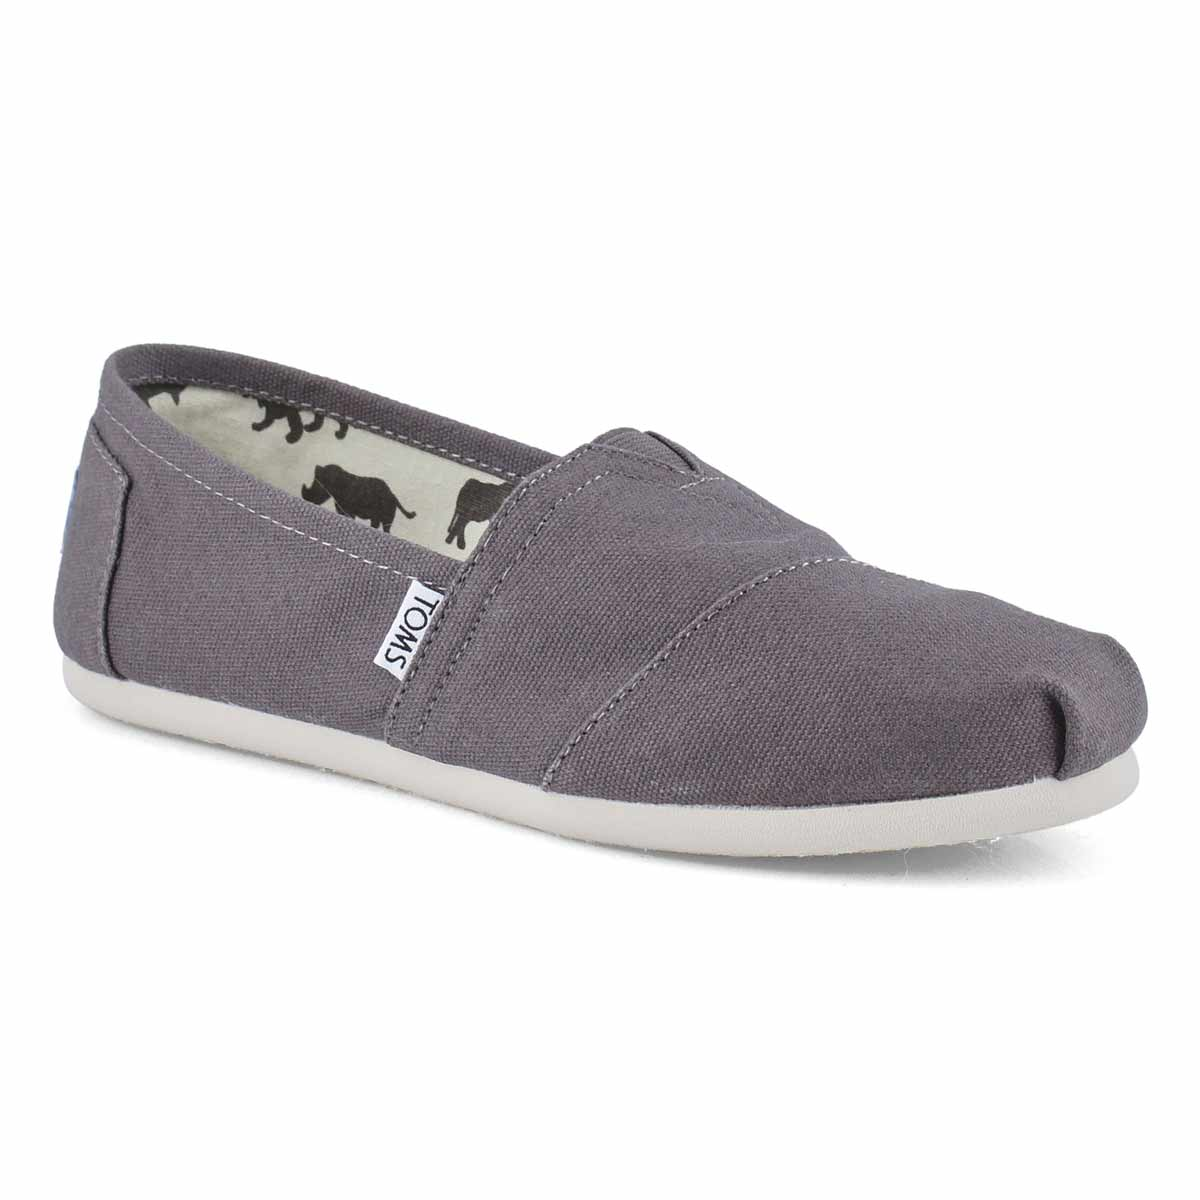 Lds Classic ash grey canvas loafer